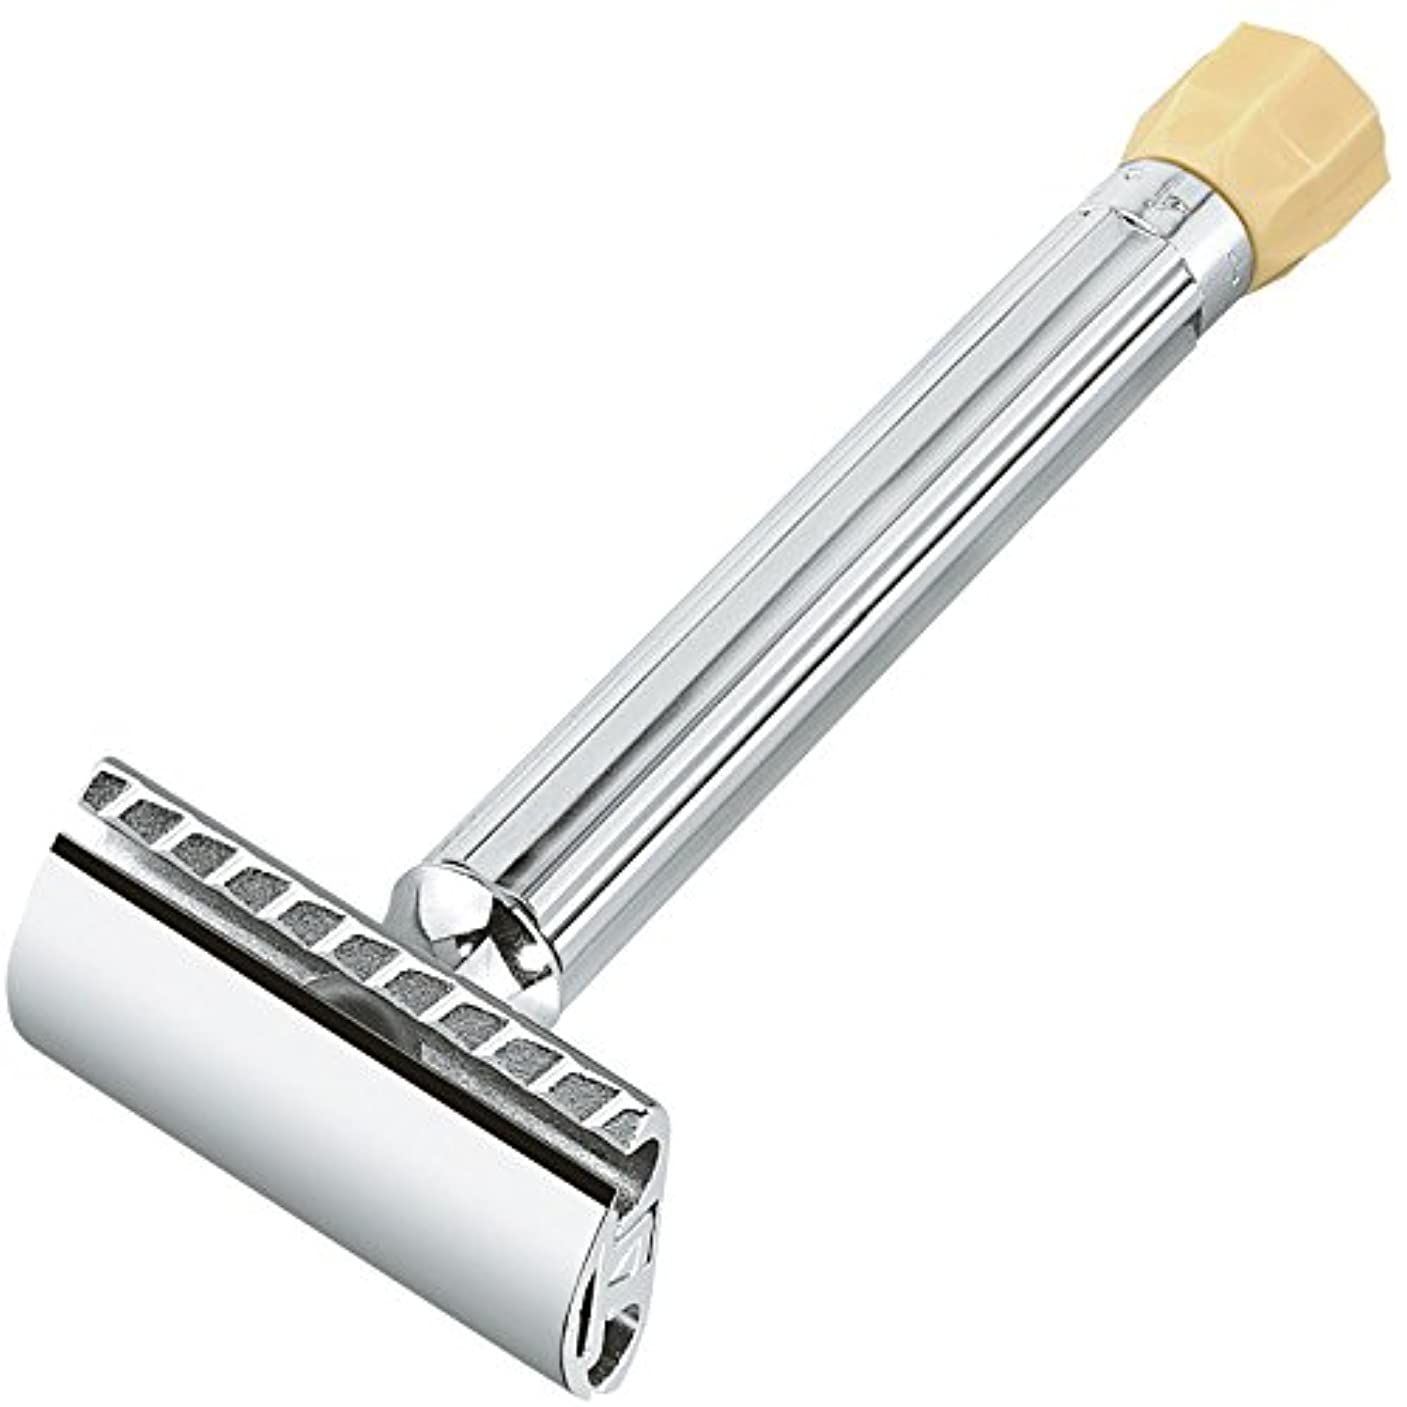 前方へ頑丈確認するMERKUR Solingen - Safety razor, long handle, blade regulation, 90510001